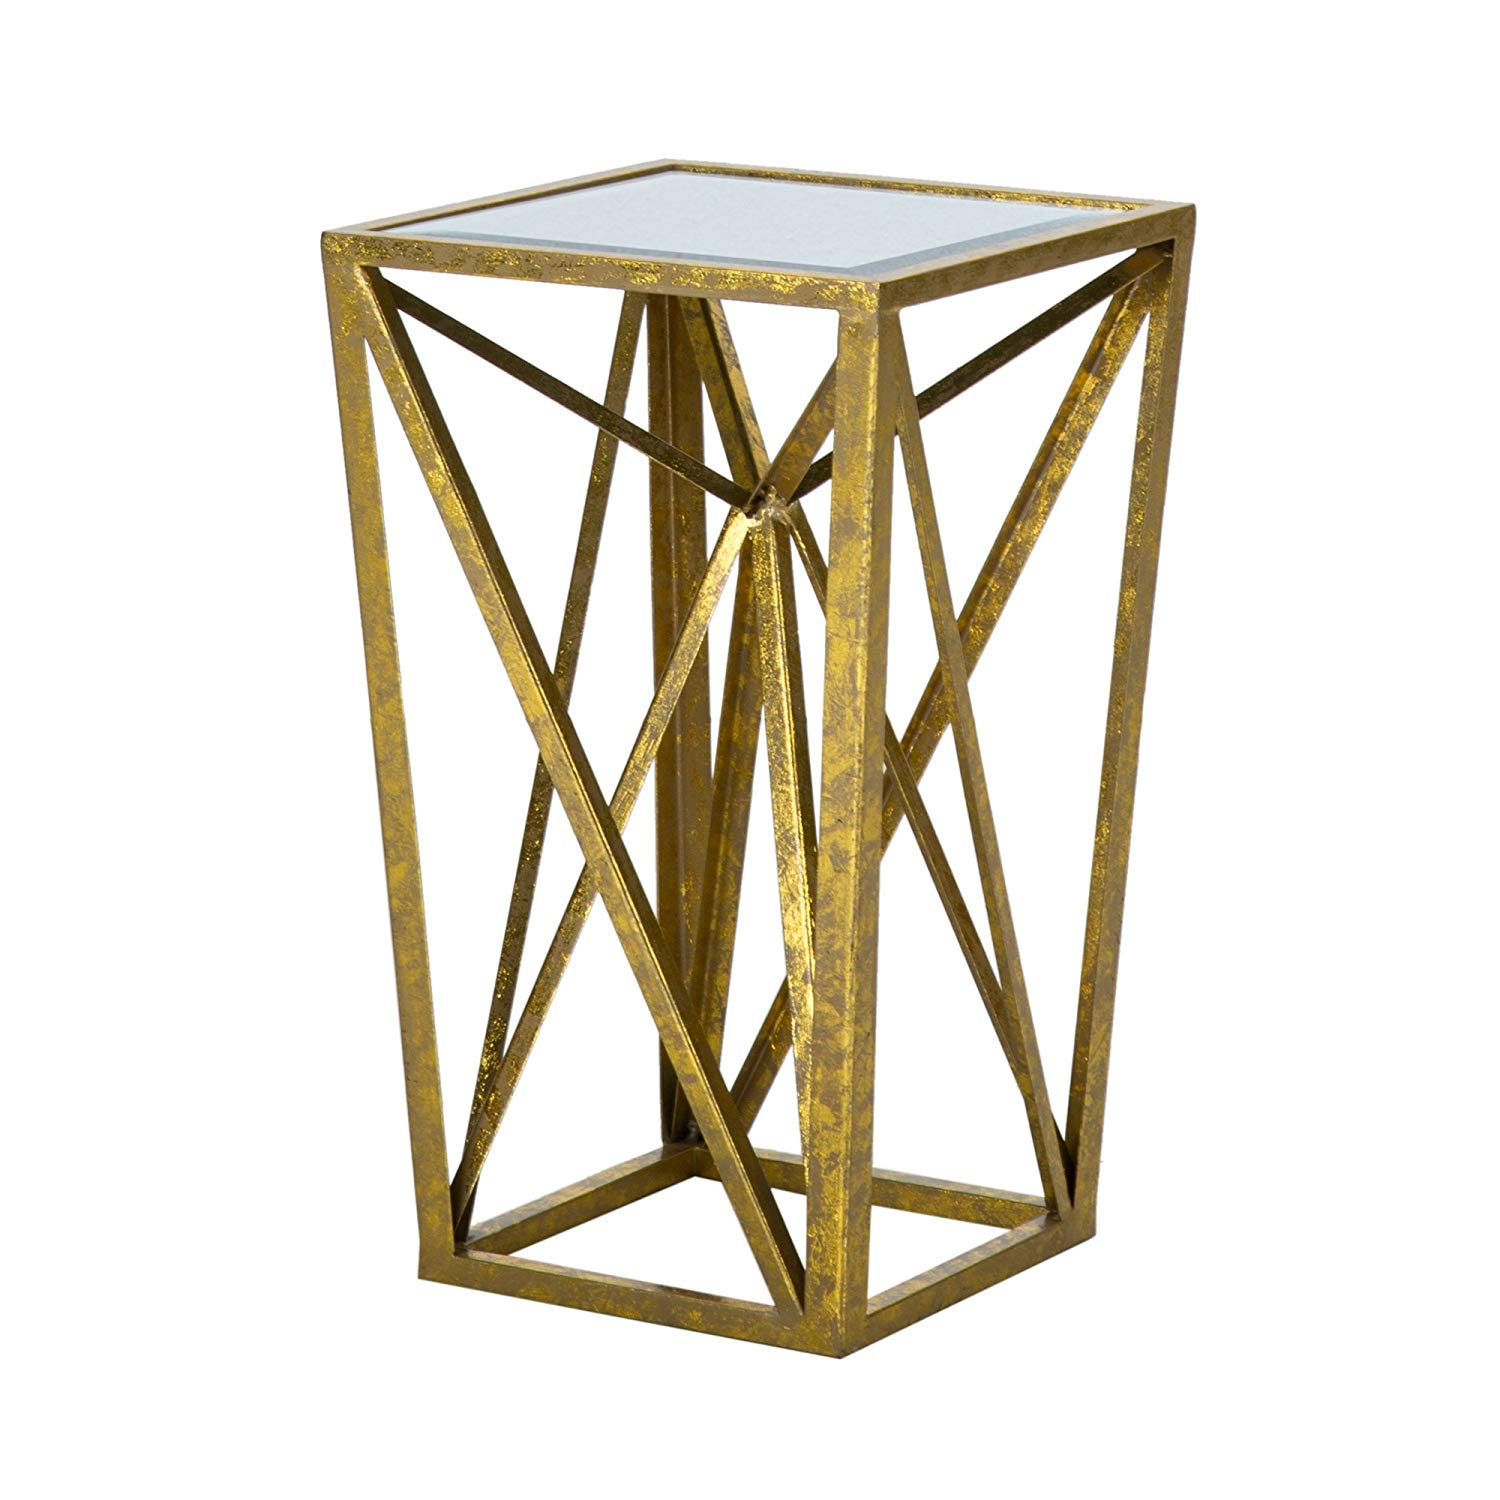 madison park zee accent tables mirror glass metal quatrefoil wood table side gold angular design modern style end piece top hollow round bedroom chairs for small spaces trestle